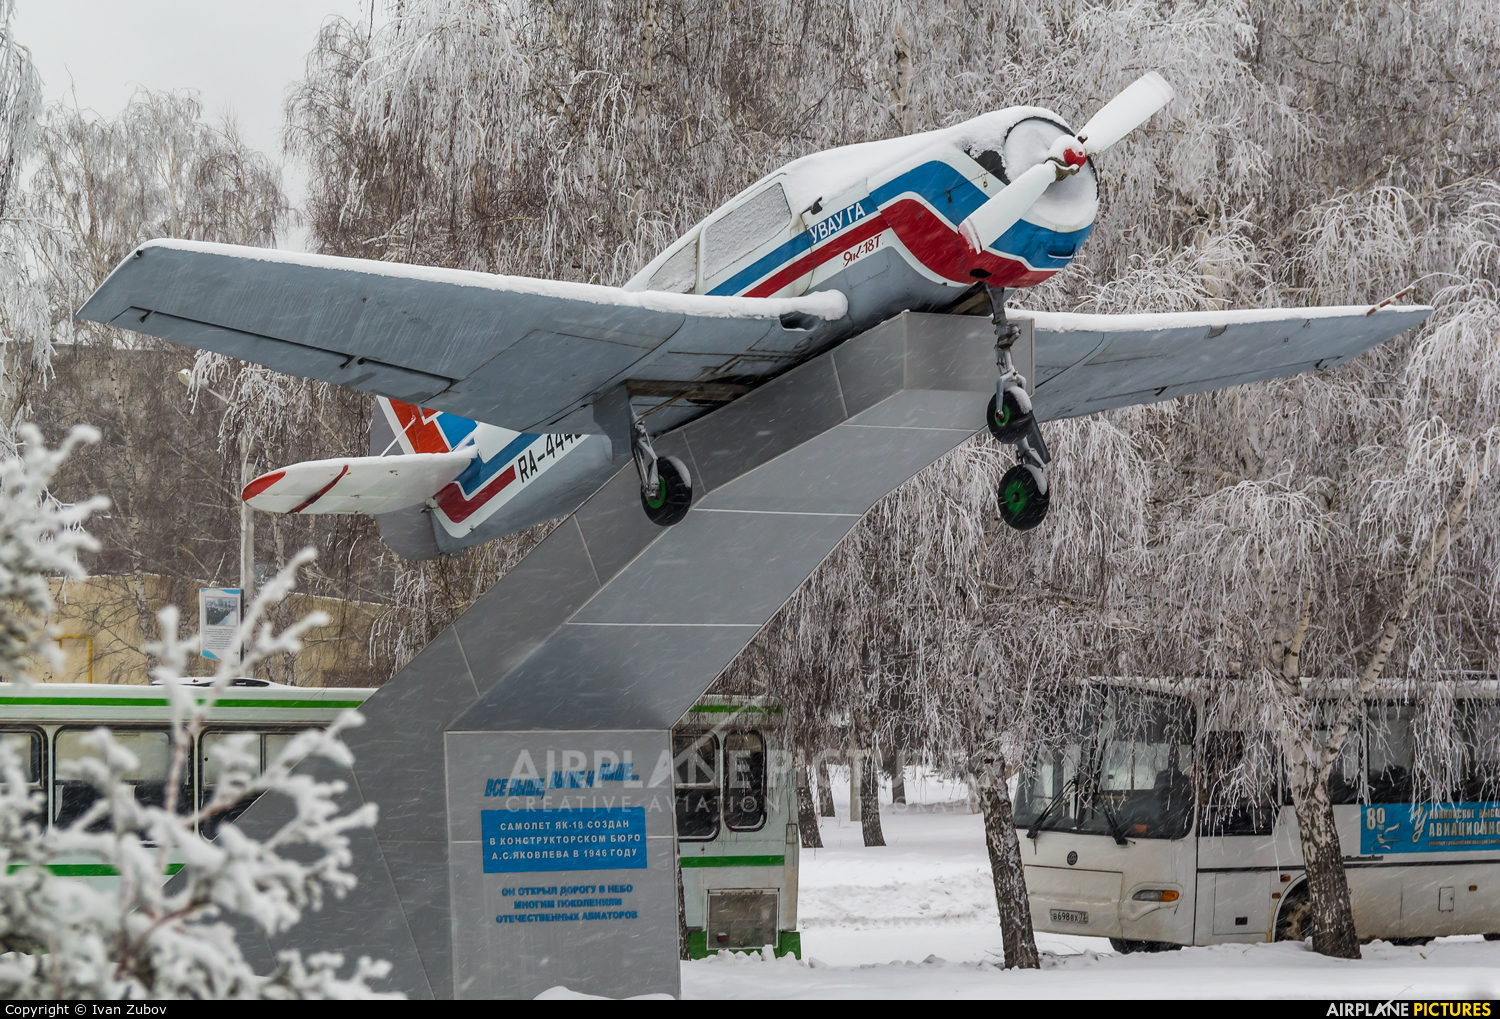 Ulyanovsk Higher Civil Aviation School RA-44492 aircraft at Off Airport - Russia